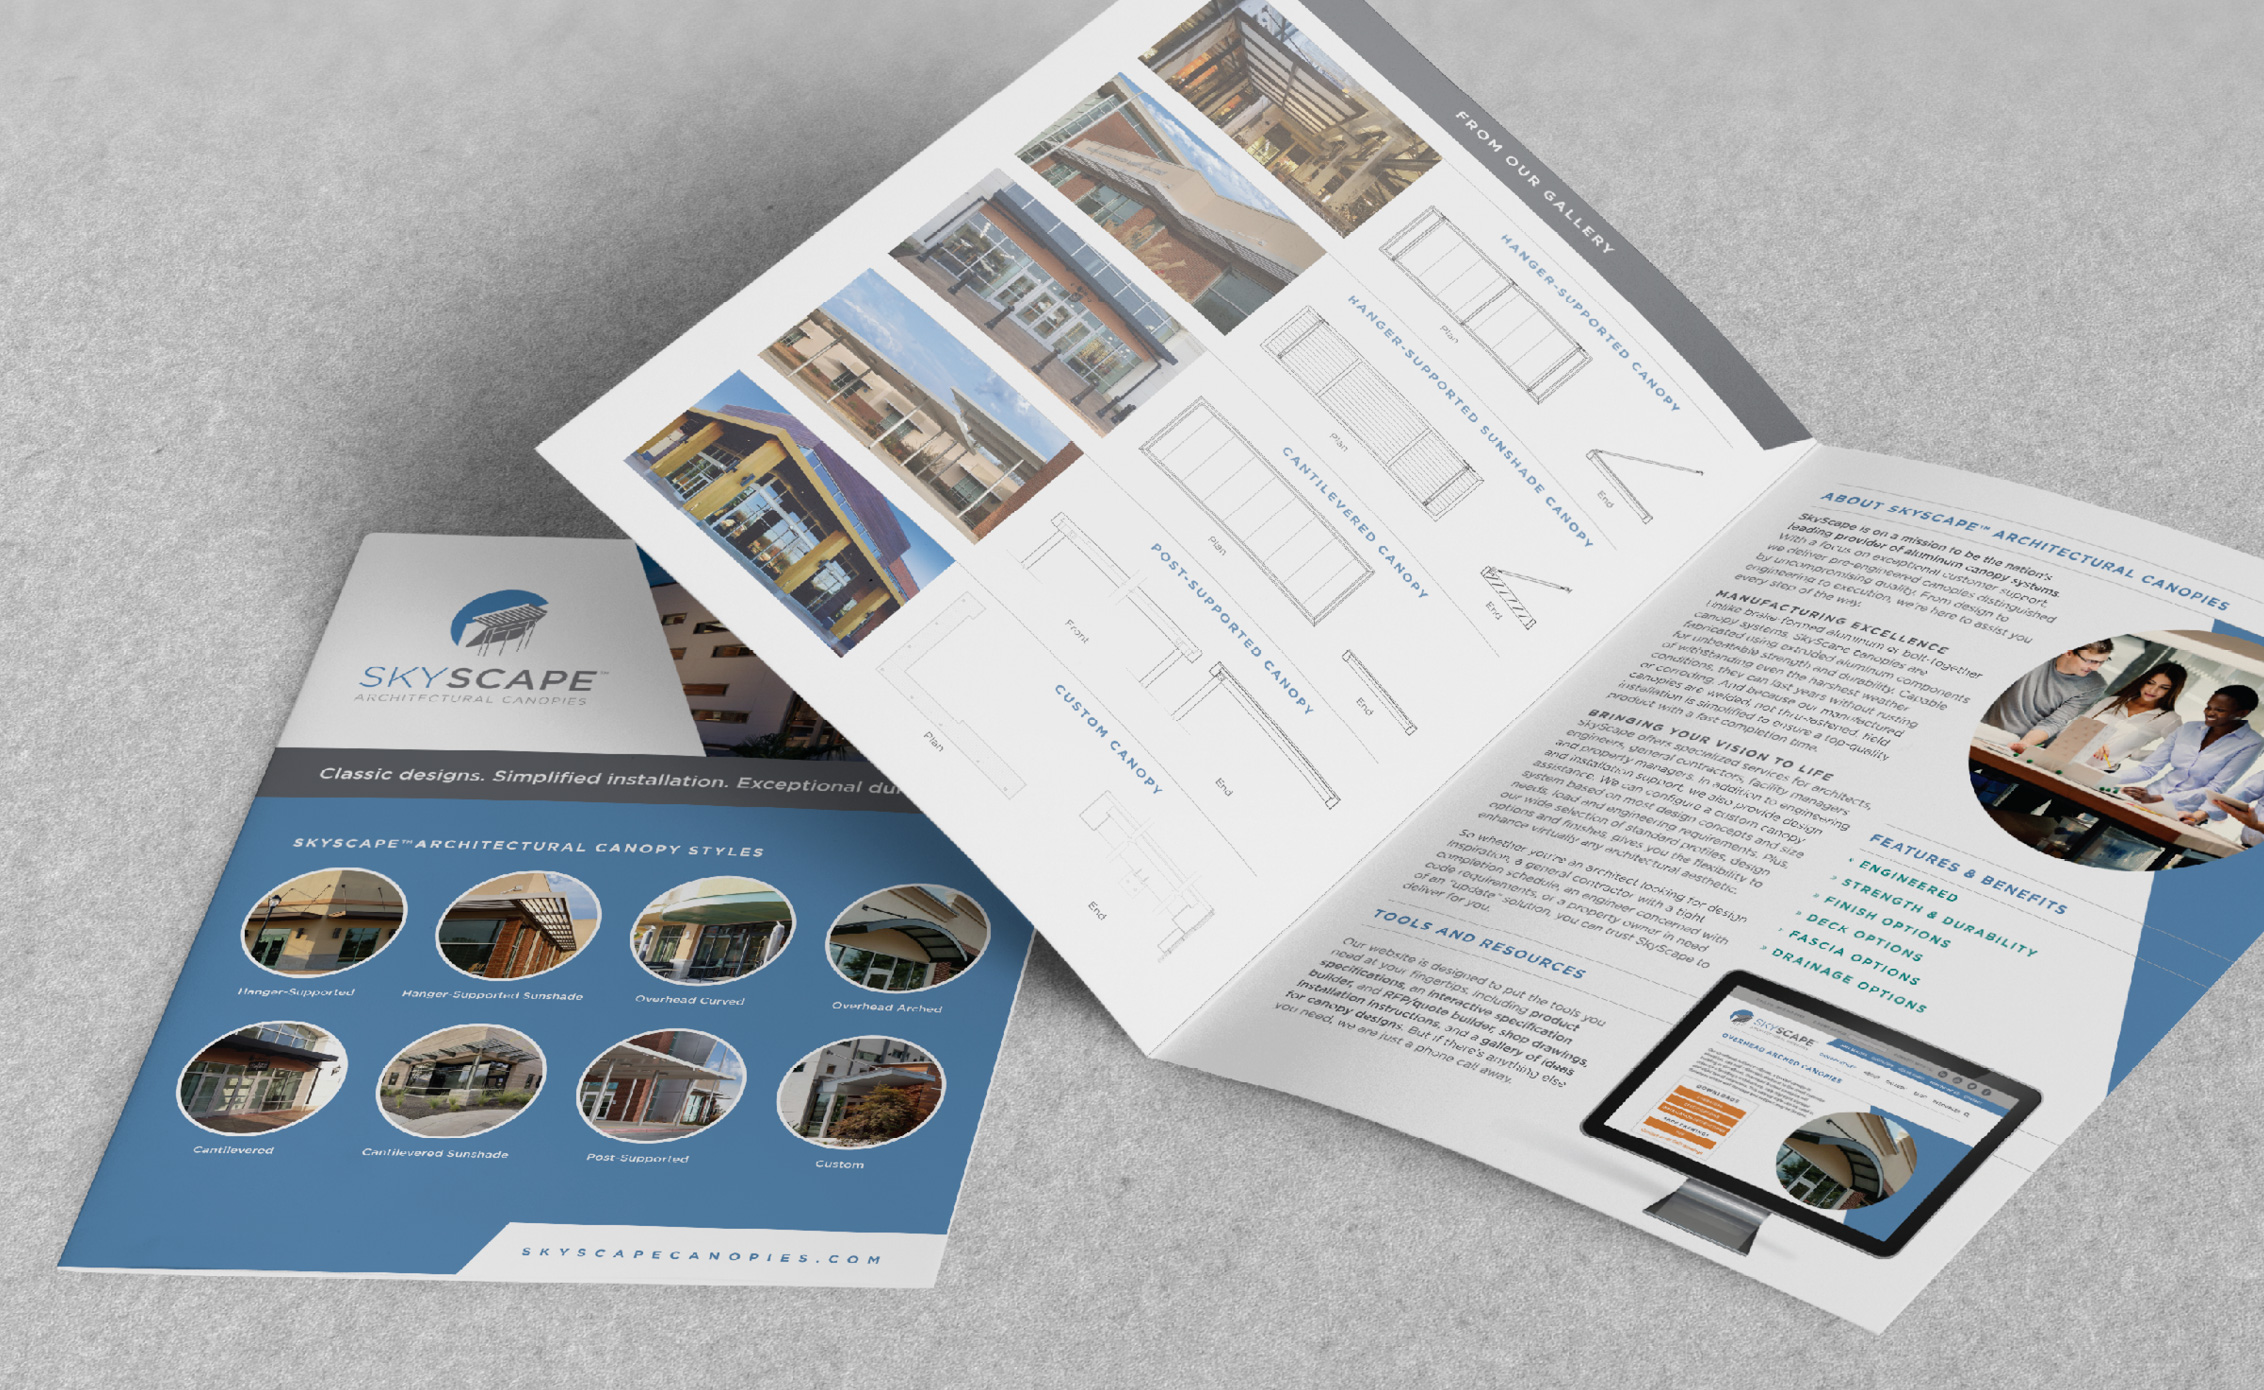 dtd skyscape marketing materials brochure 01